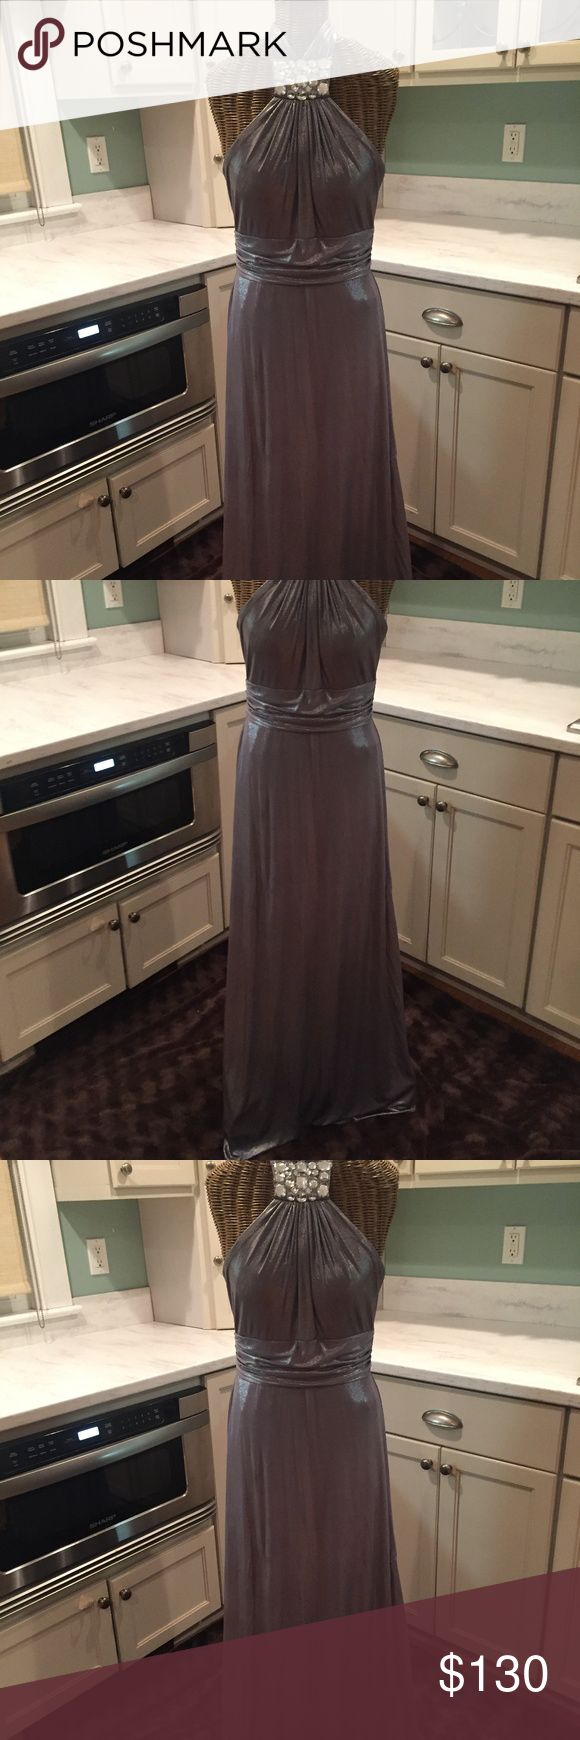 Silver Metallic Halter Special Occasion Dress White House Black Market Silver Metallic Halter Dress Size 6 Worn Once Full Length White House Black Market Dresses Backless